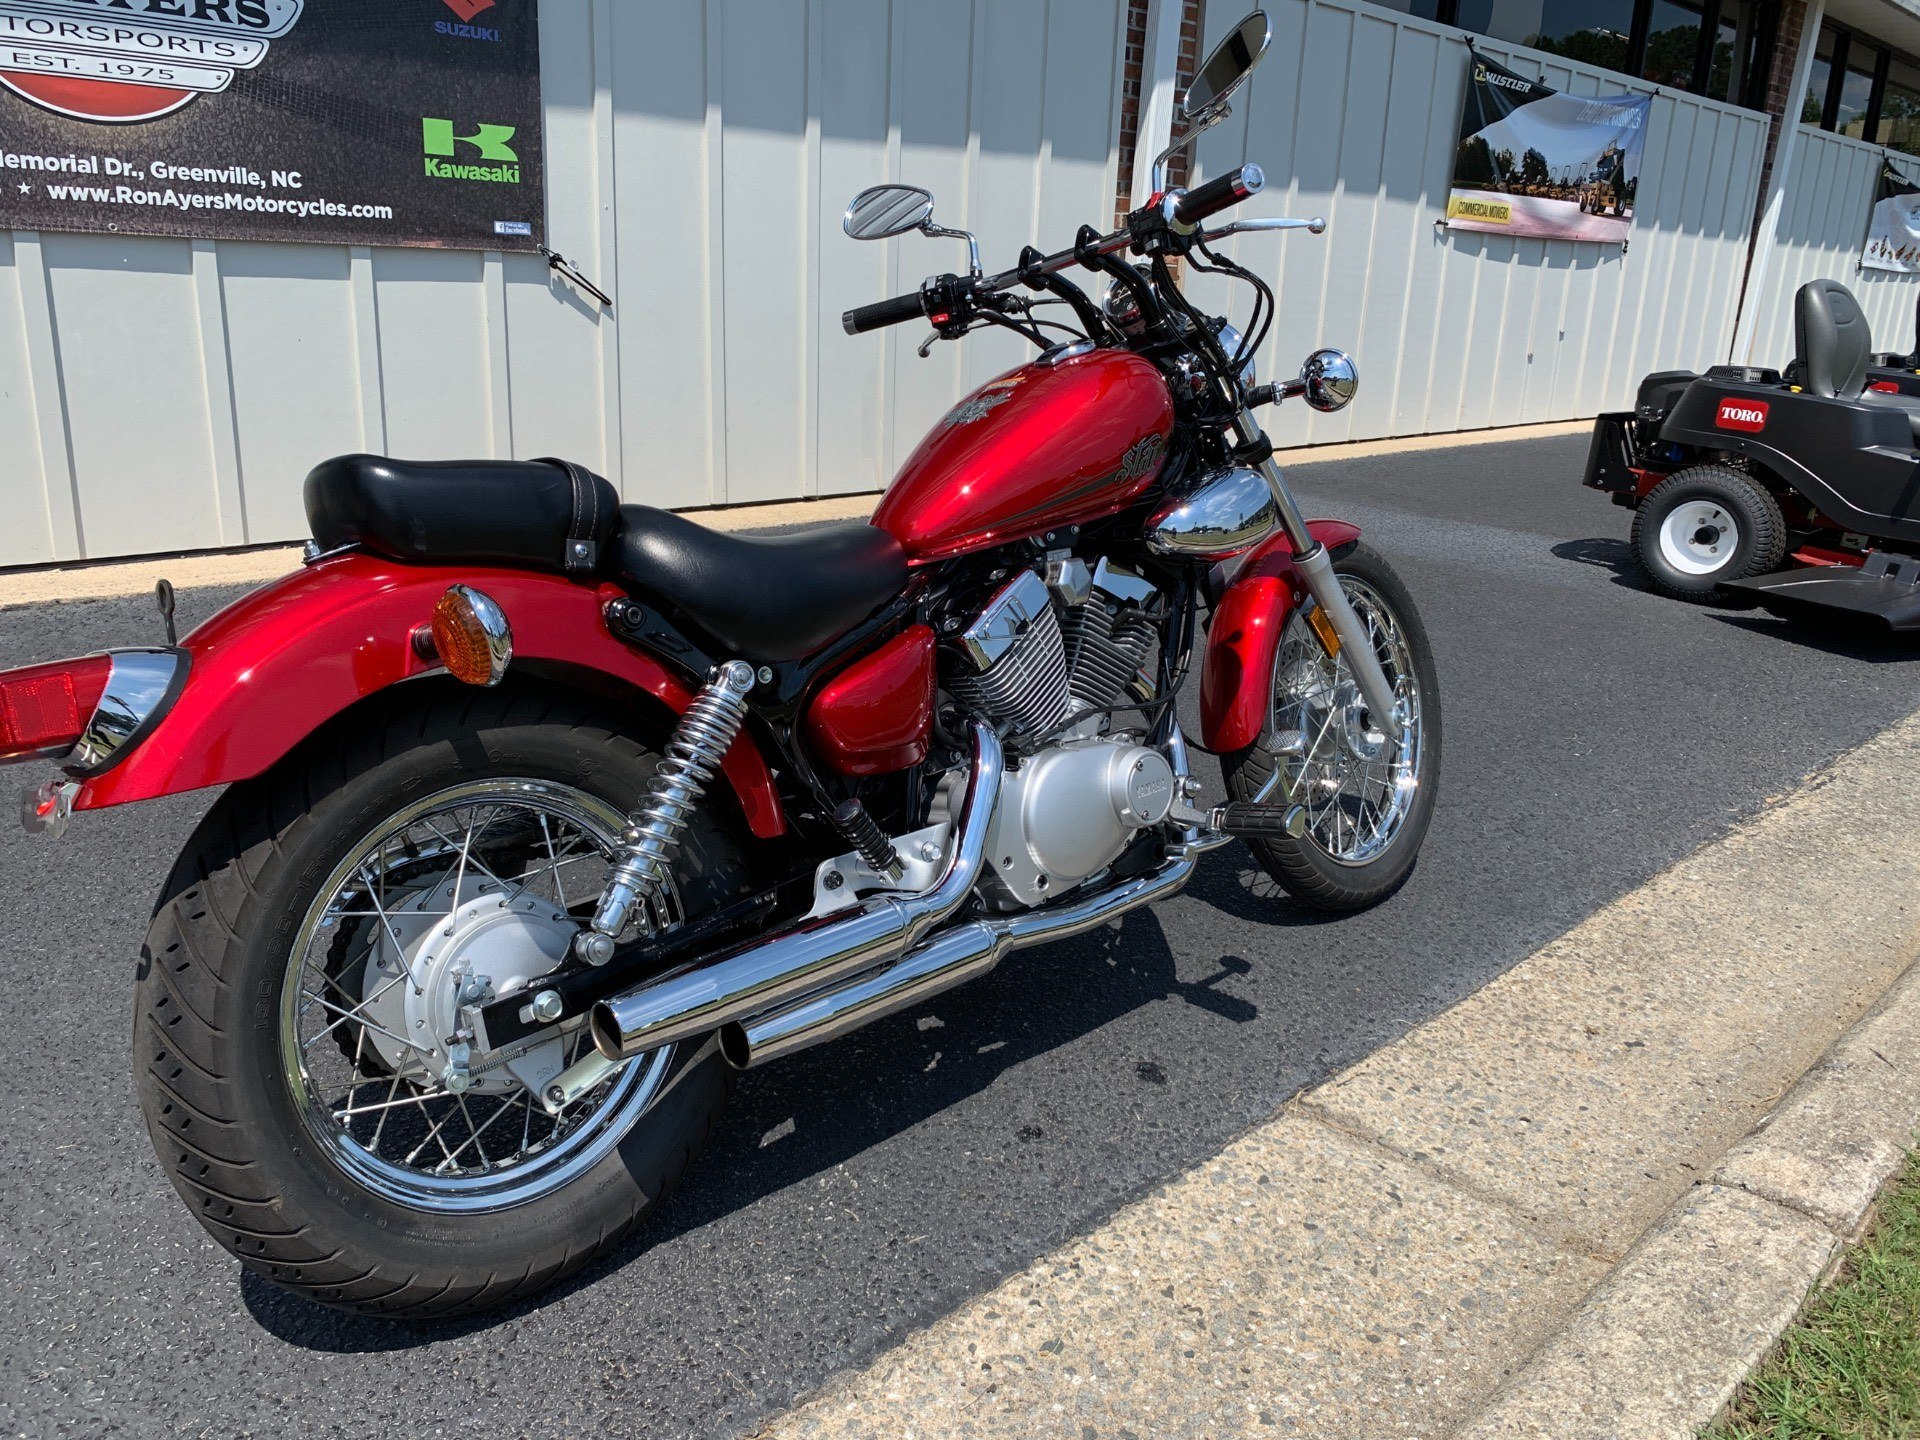 2014 Yamaha V Star 250 in Greenville, North Carolina - Photo 9